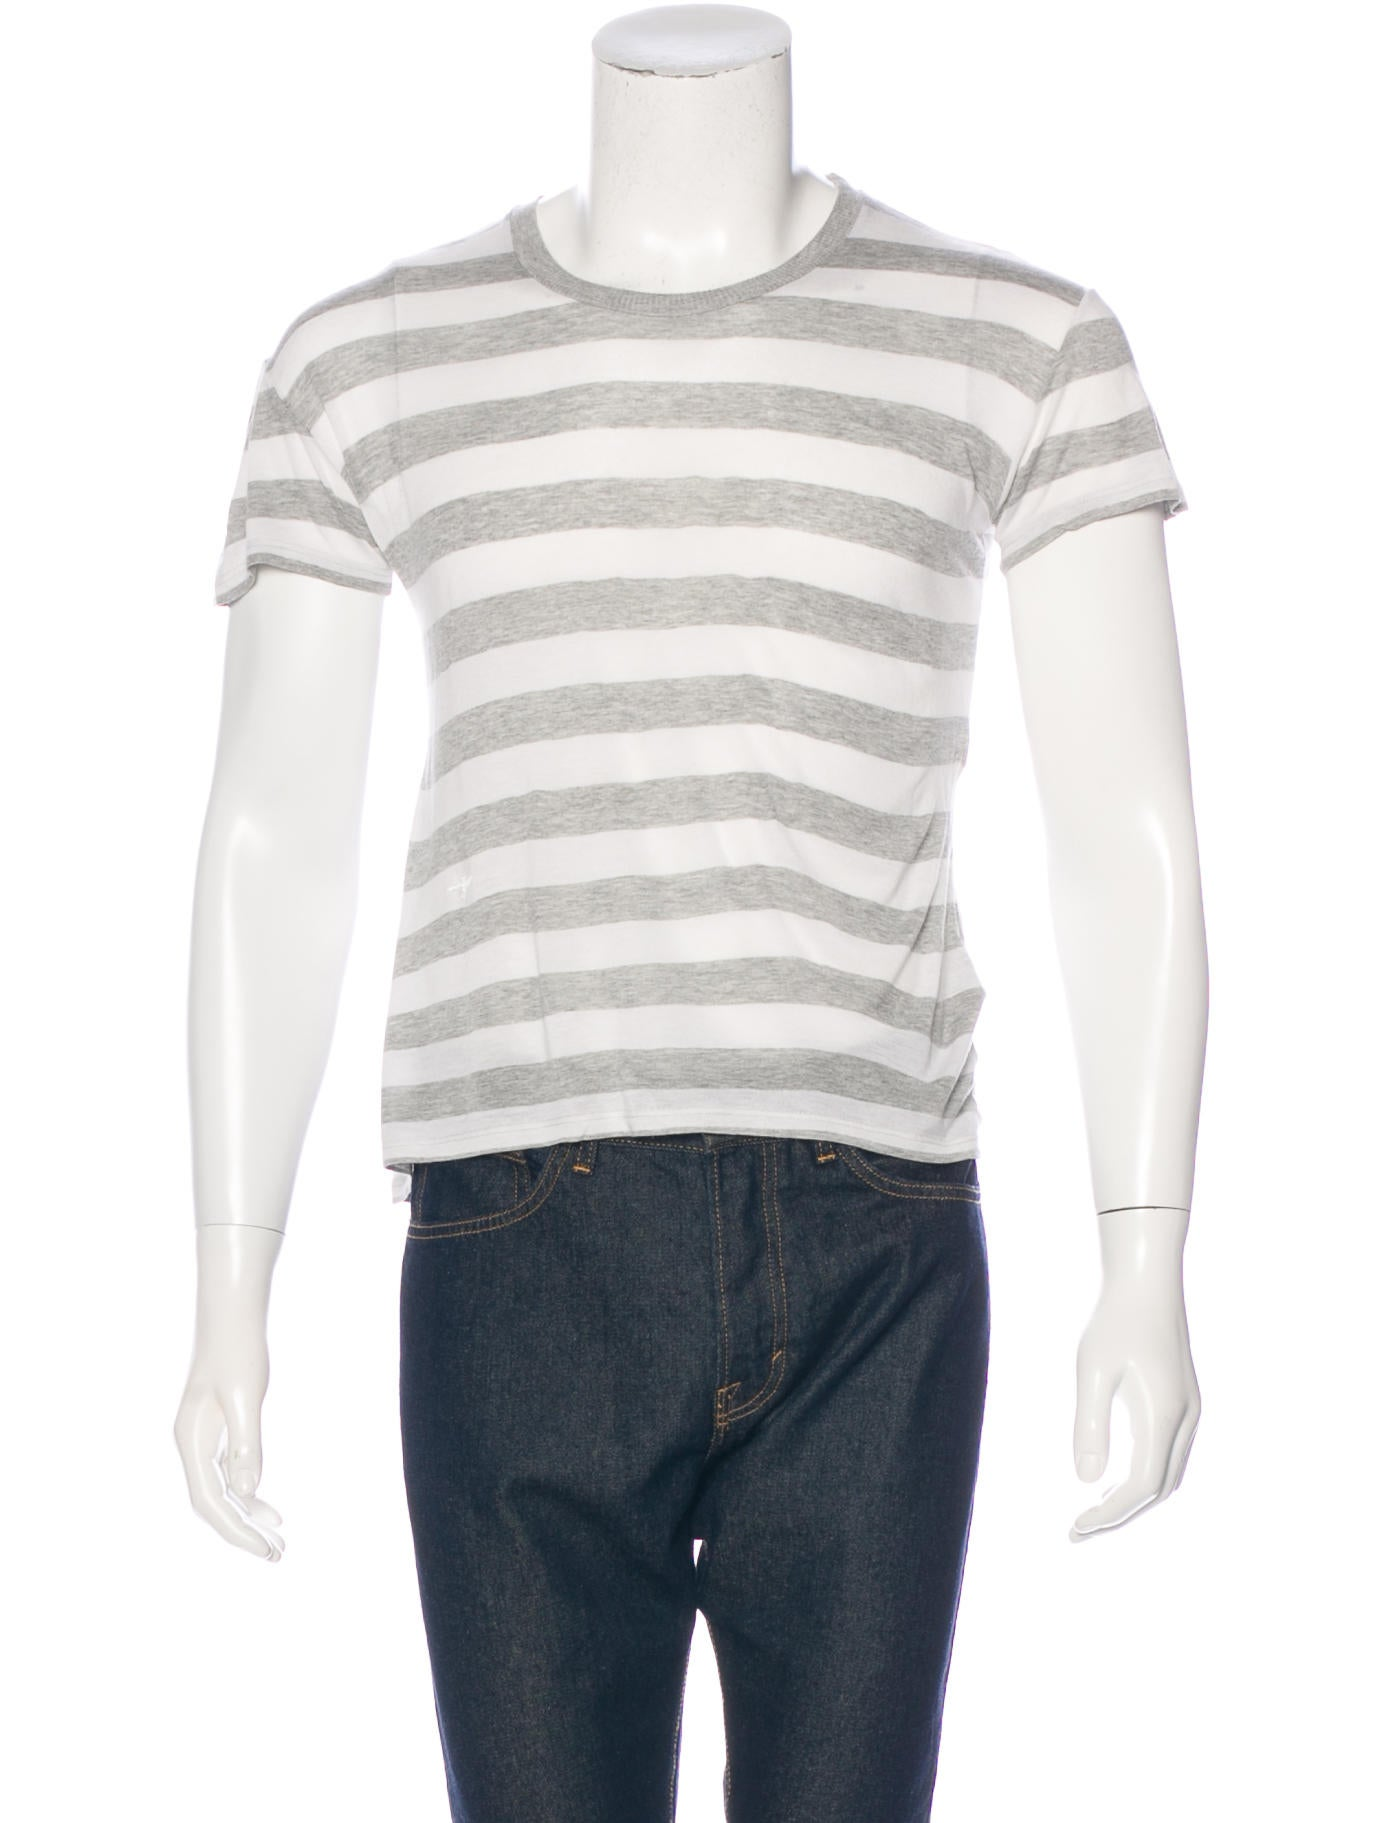 Dior homme bee embroidered striped t shirt clothing